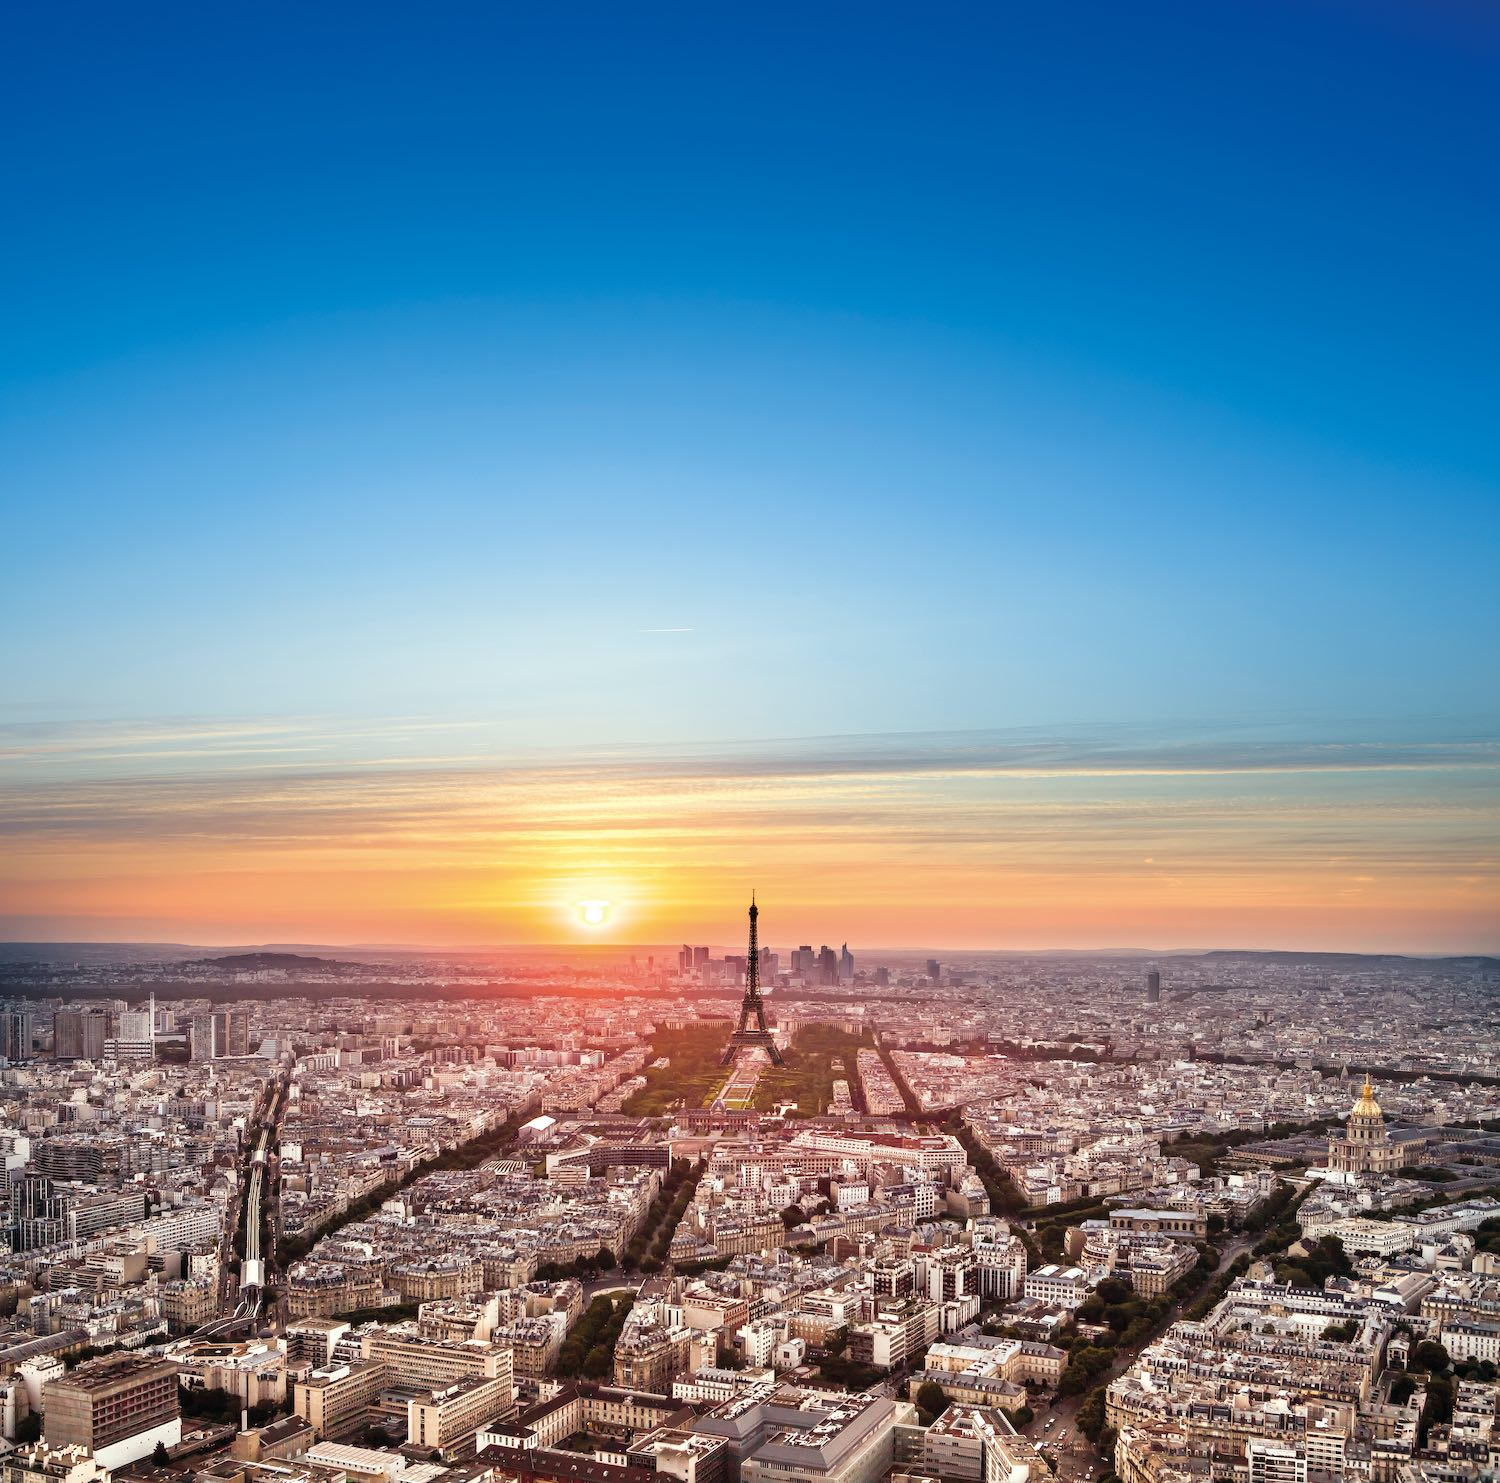 Tour Montparnasse - Best Things to do in Paris in 4 Days 2020